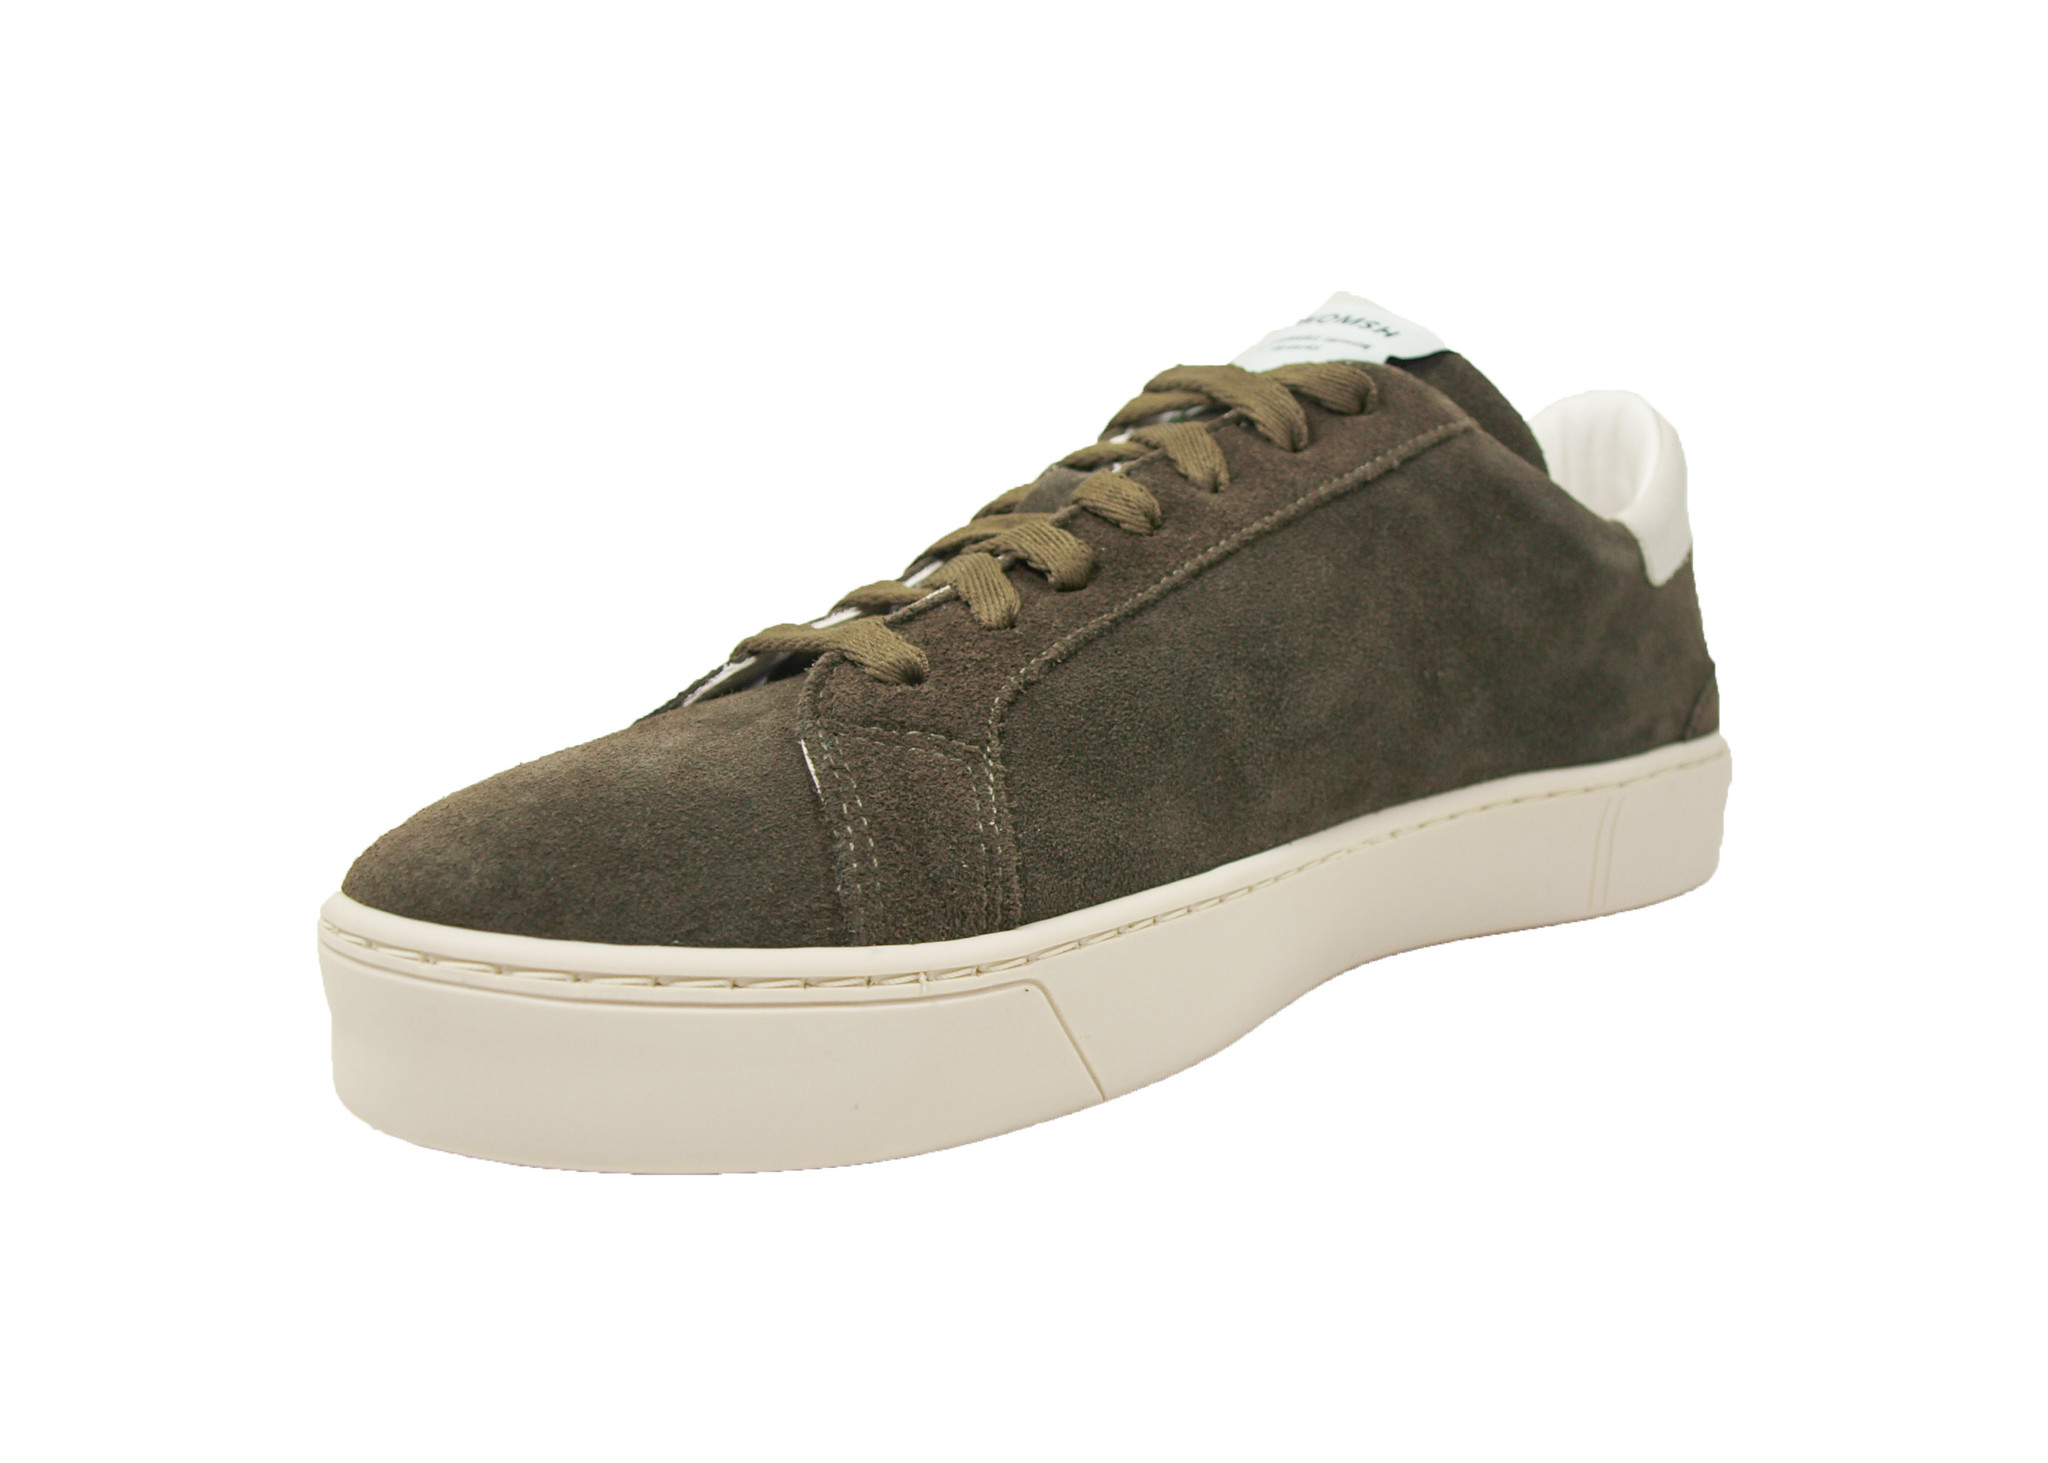 WOMSH WOMSH Sustainable Sneaker S202253 Snik Military Groen